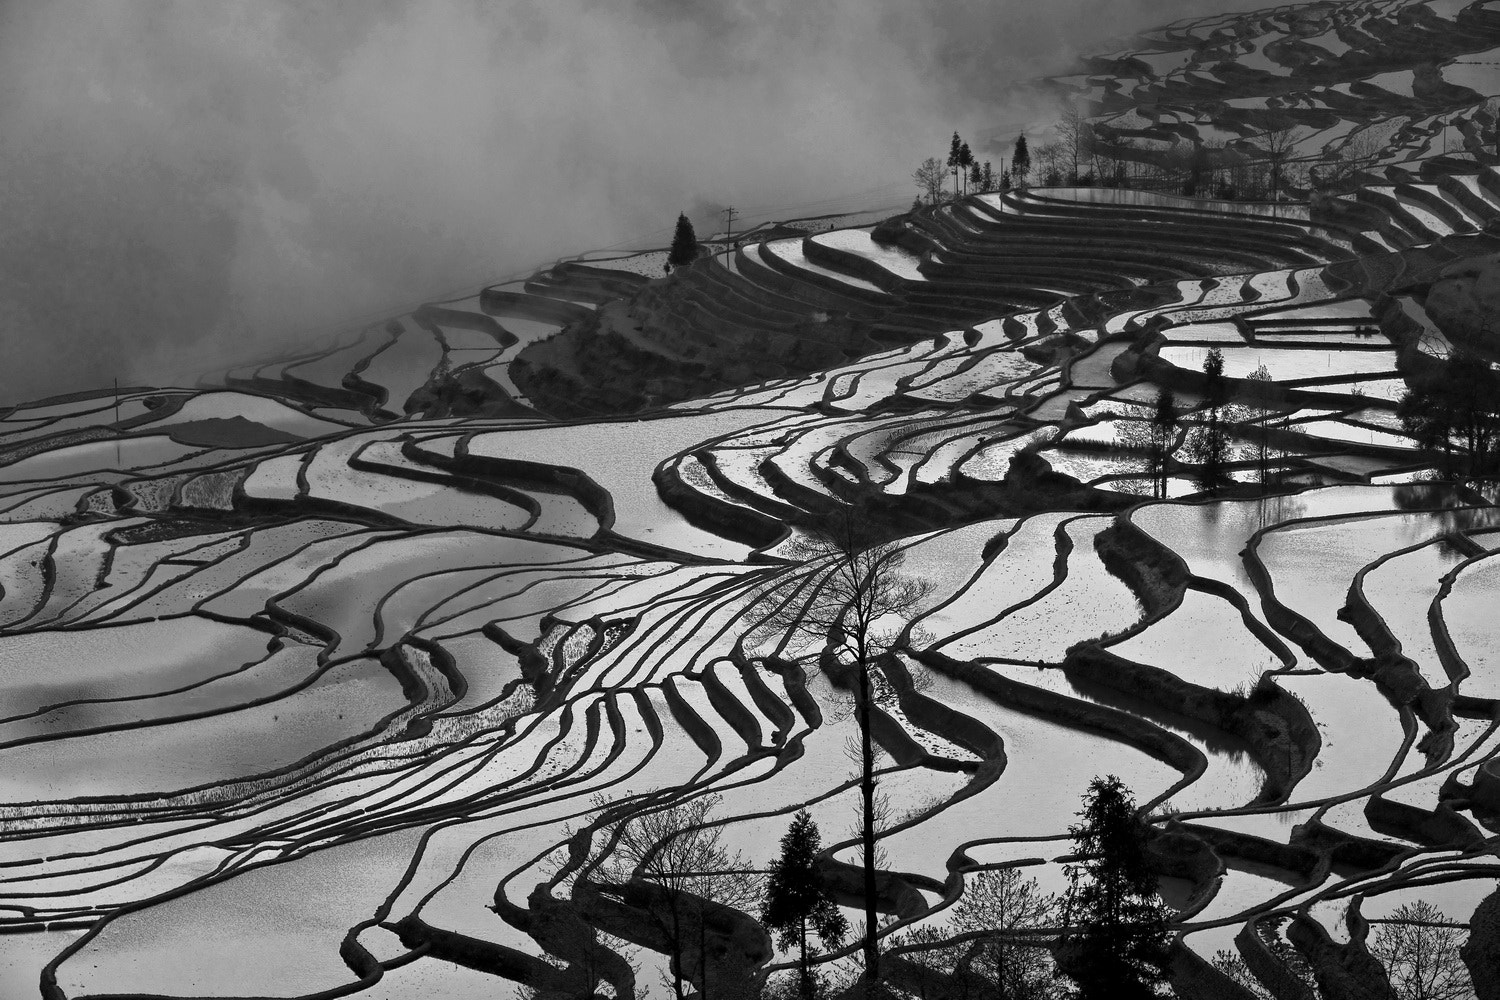 Photograph - - Rice Field - - by SIJANTO NATURE on 500px